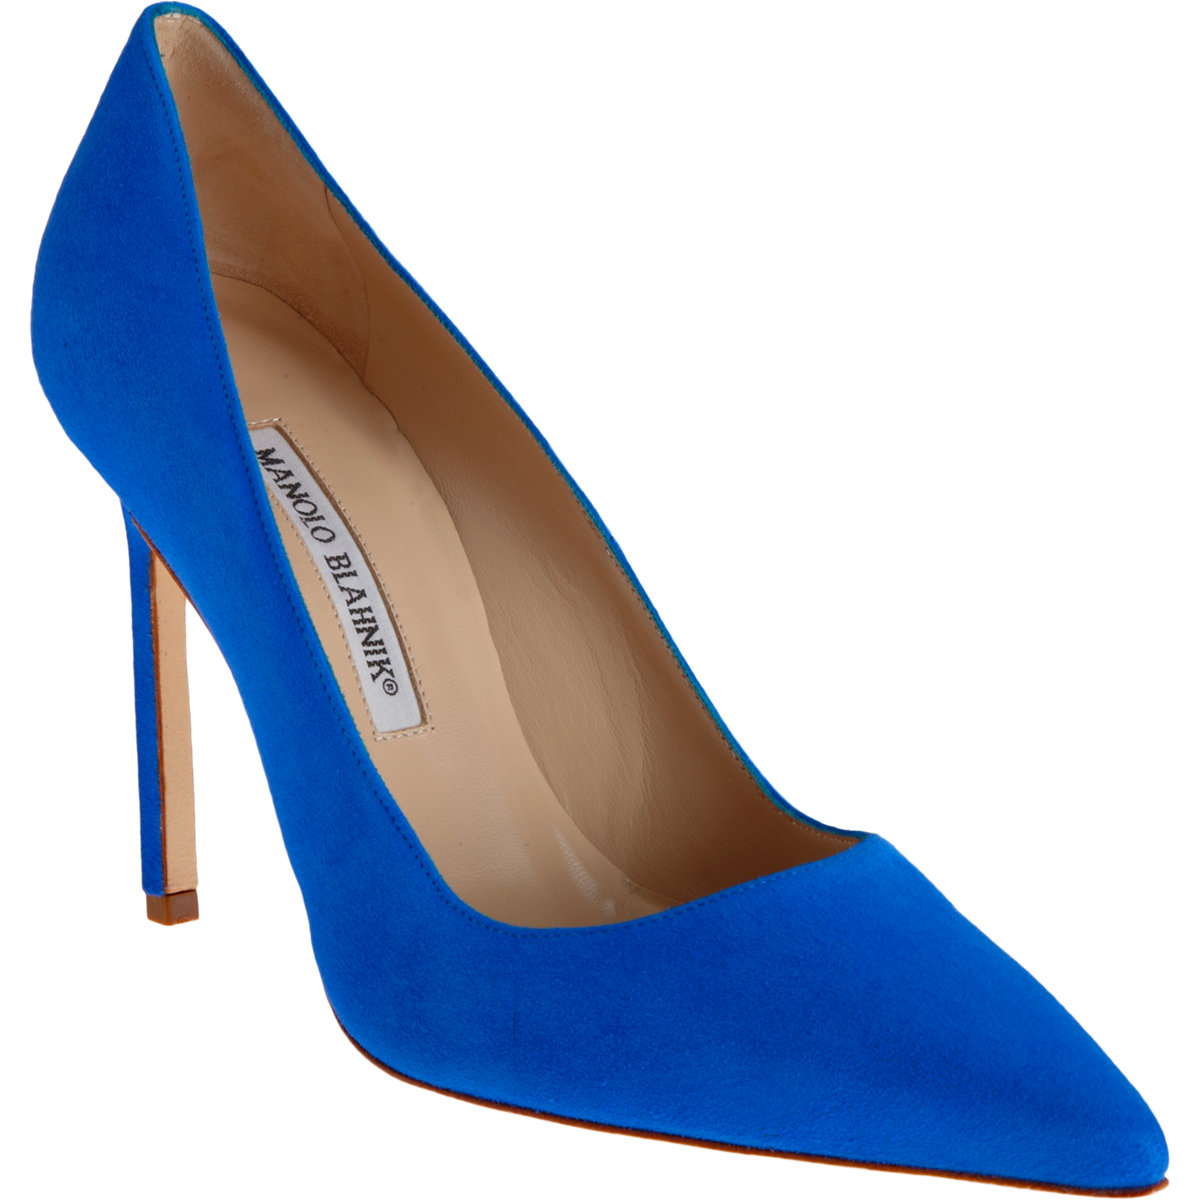 Lyst manolo blahnik bb pumps in purple for Who is manolo blahnik